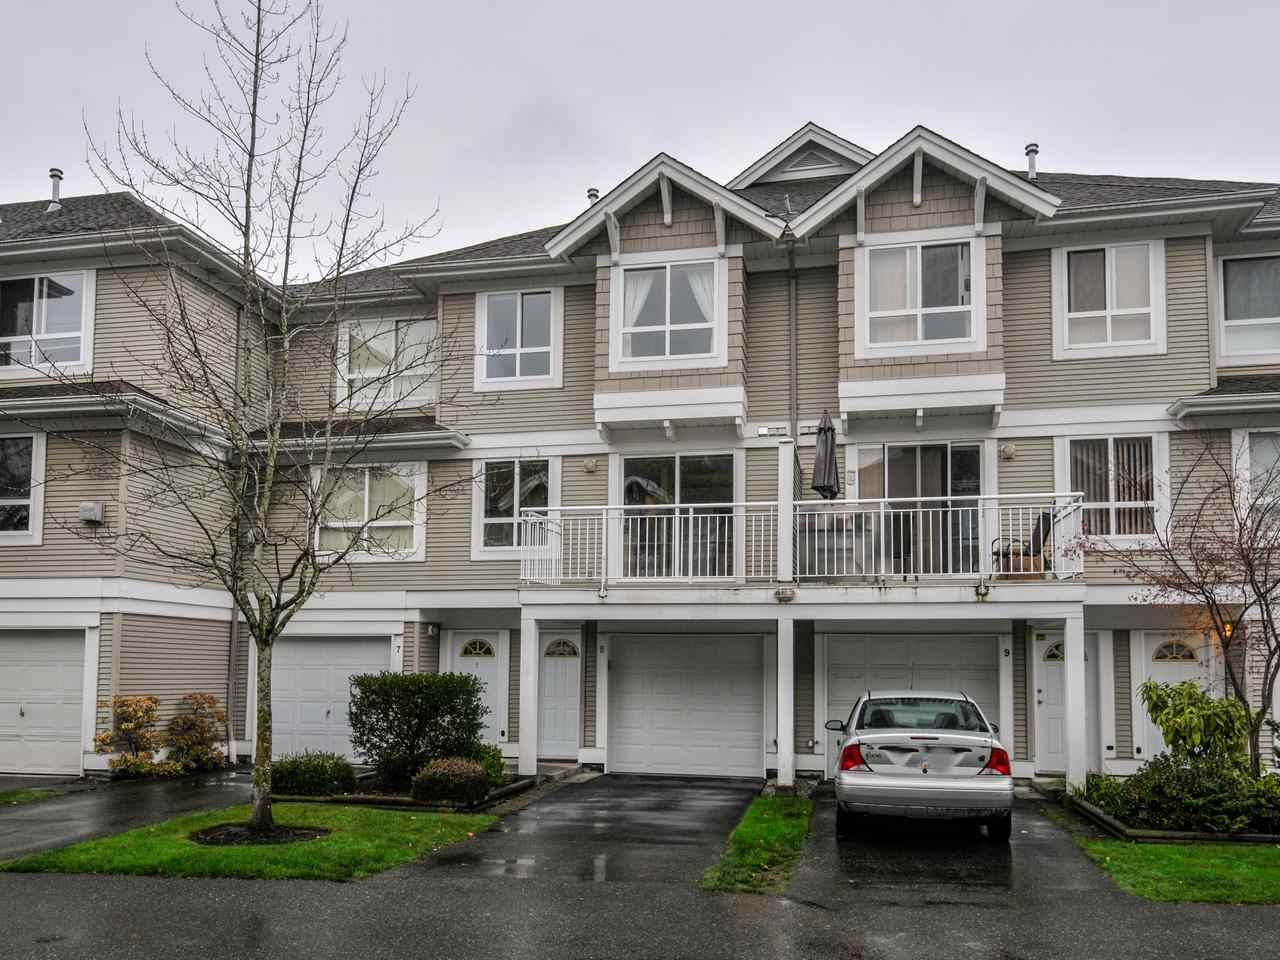 """Main Photo: 8 20890 57 Avenue in Langley: Langley City Townhouse for sale in """"ASPEN GABLES"""" : MLS®# R2323491"""